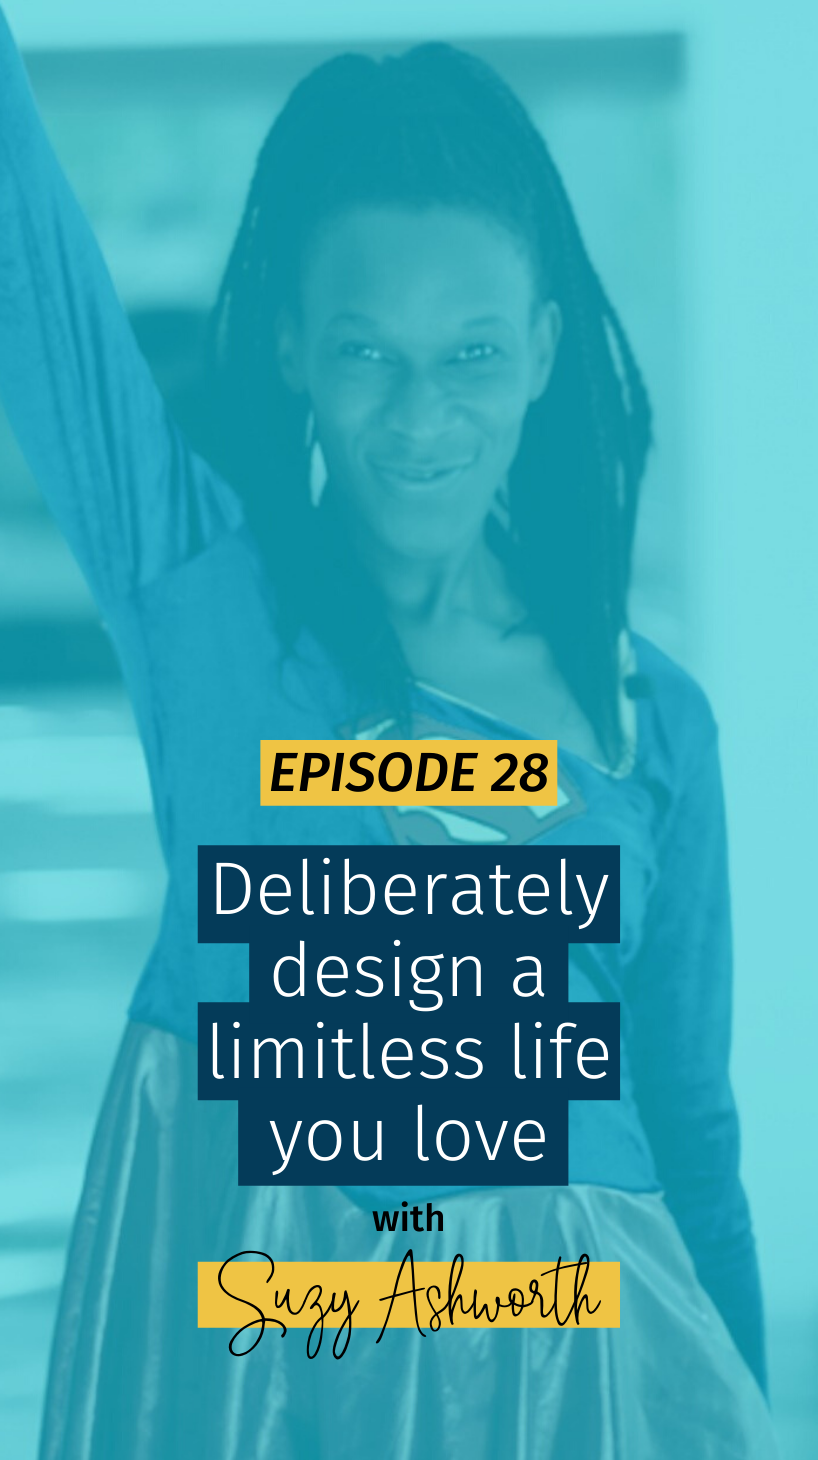 028 Deliberately design a limitless life you love